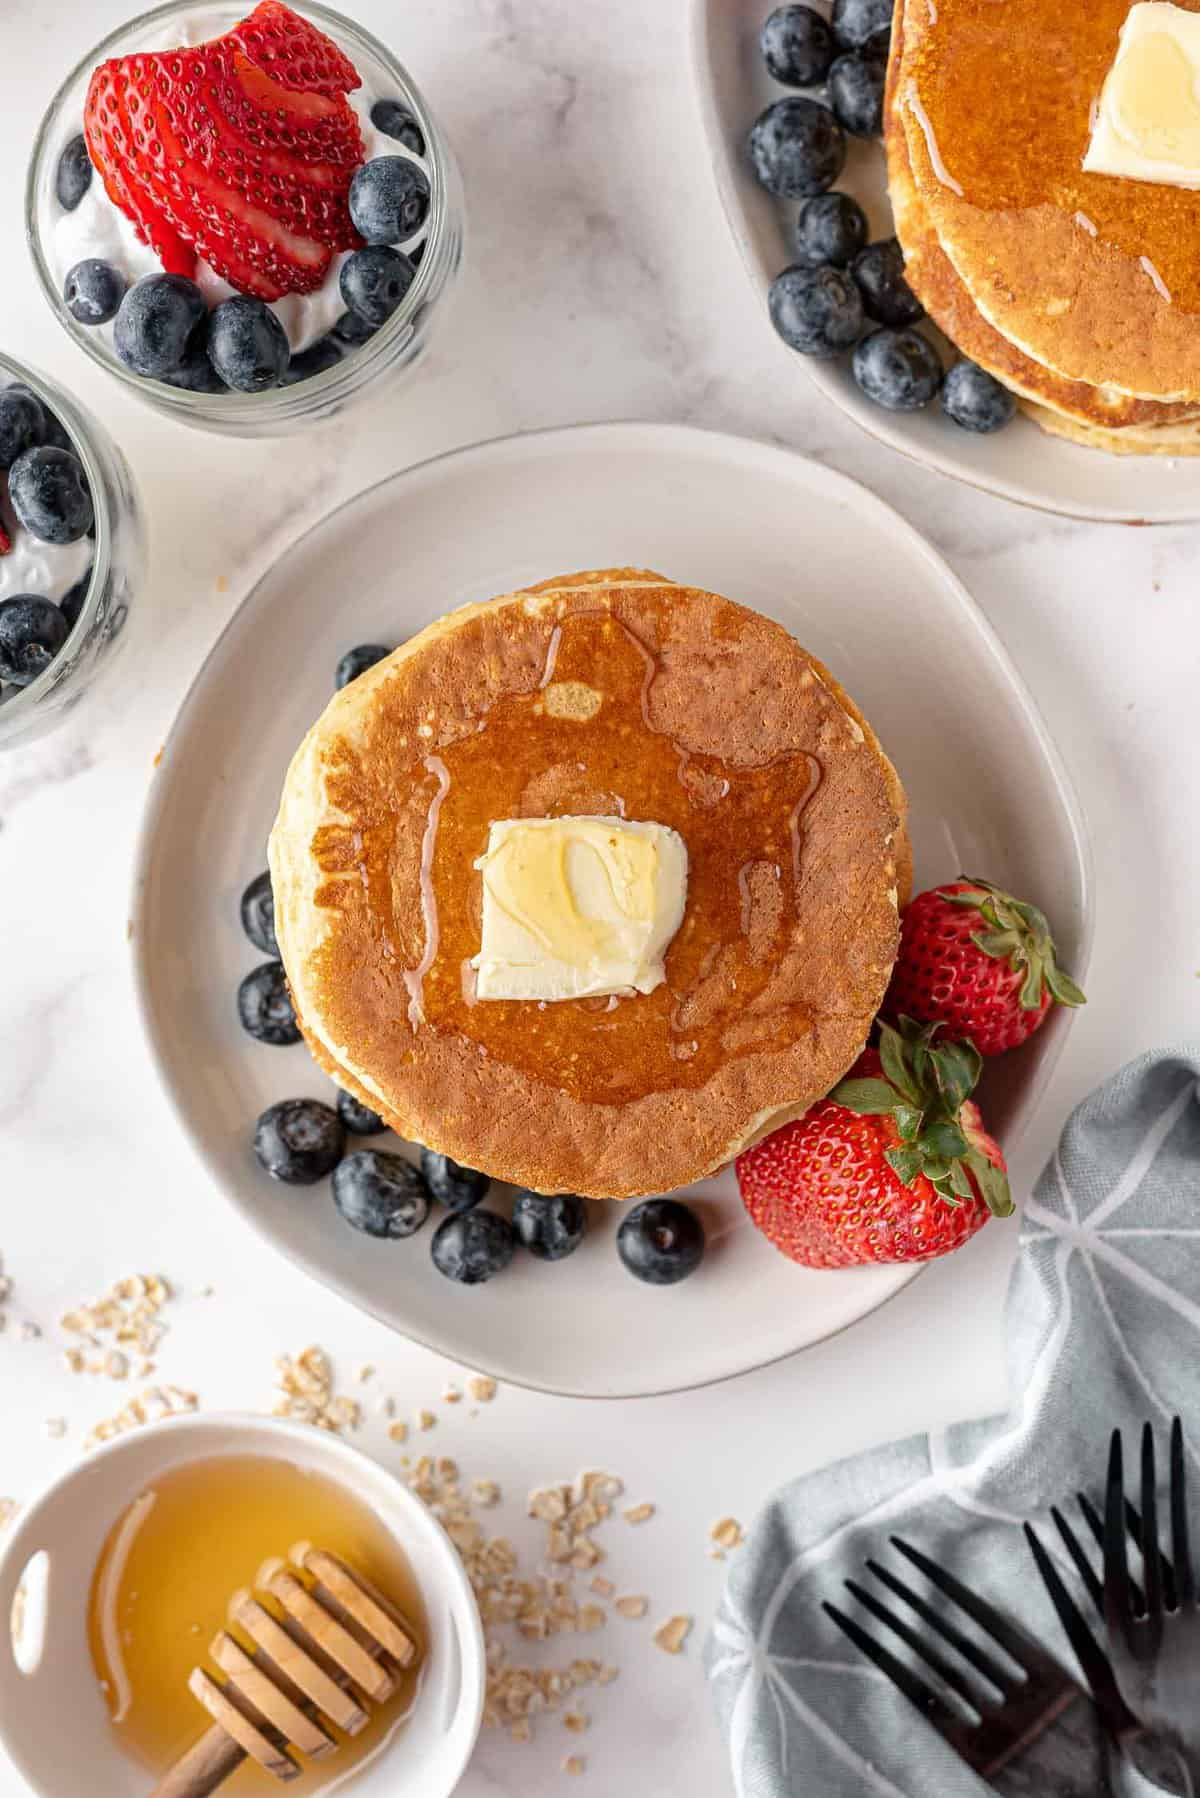 Overhead view of pancakes topped with butter and syrup.